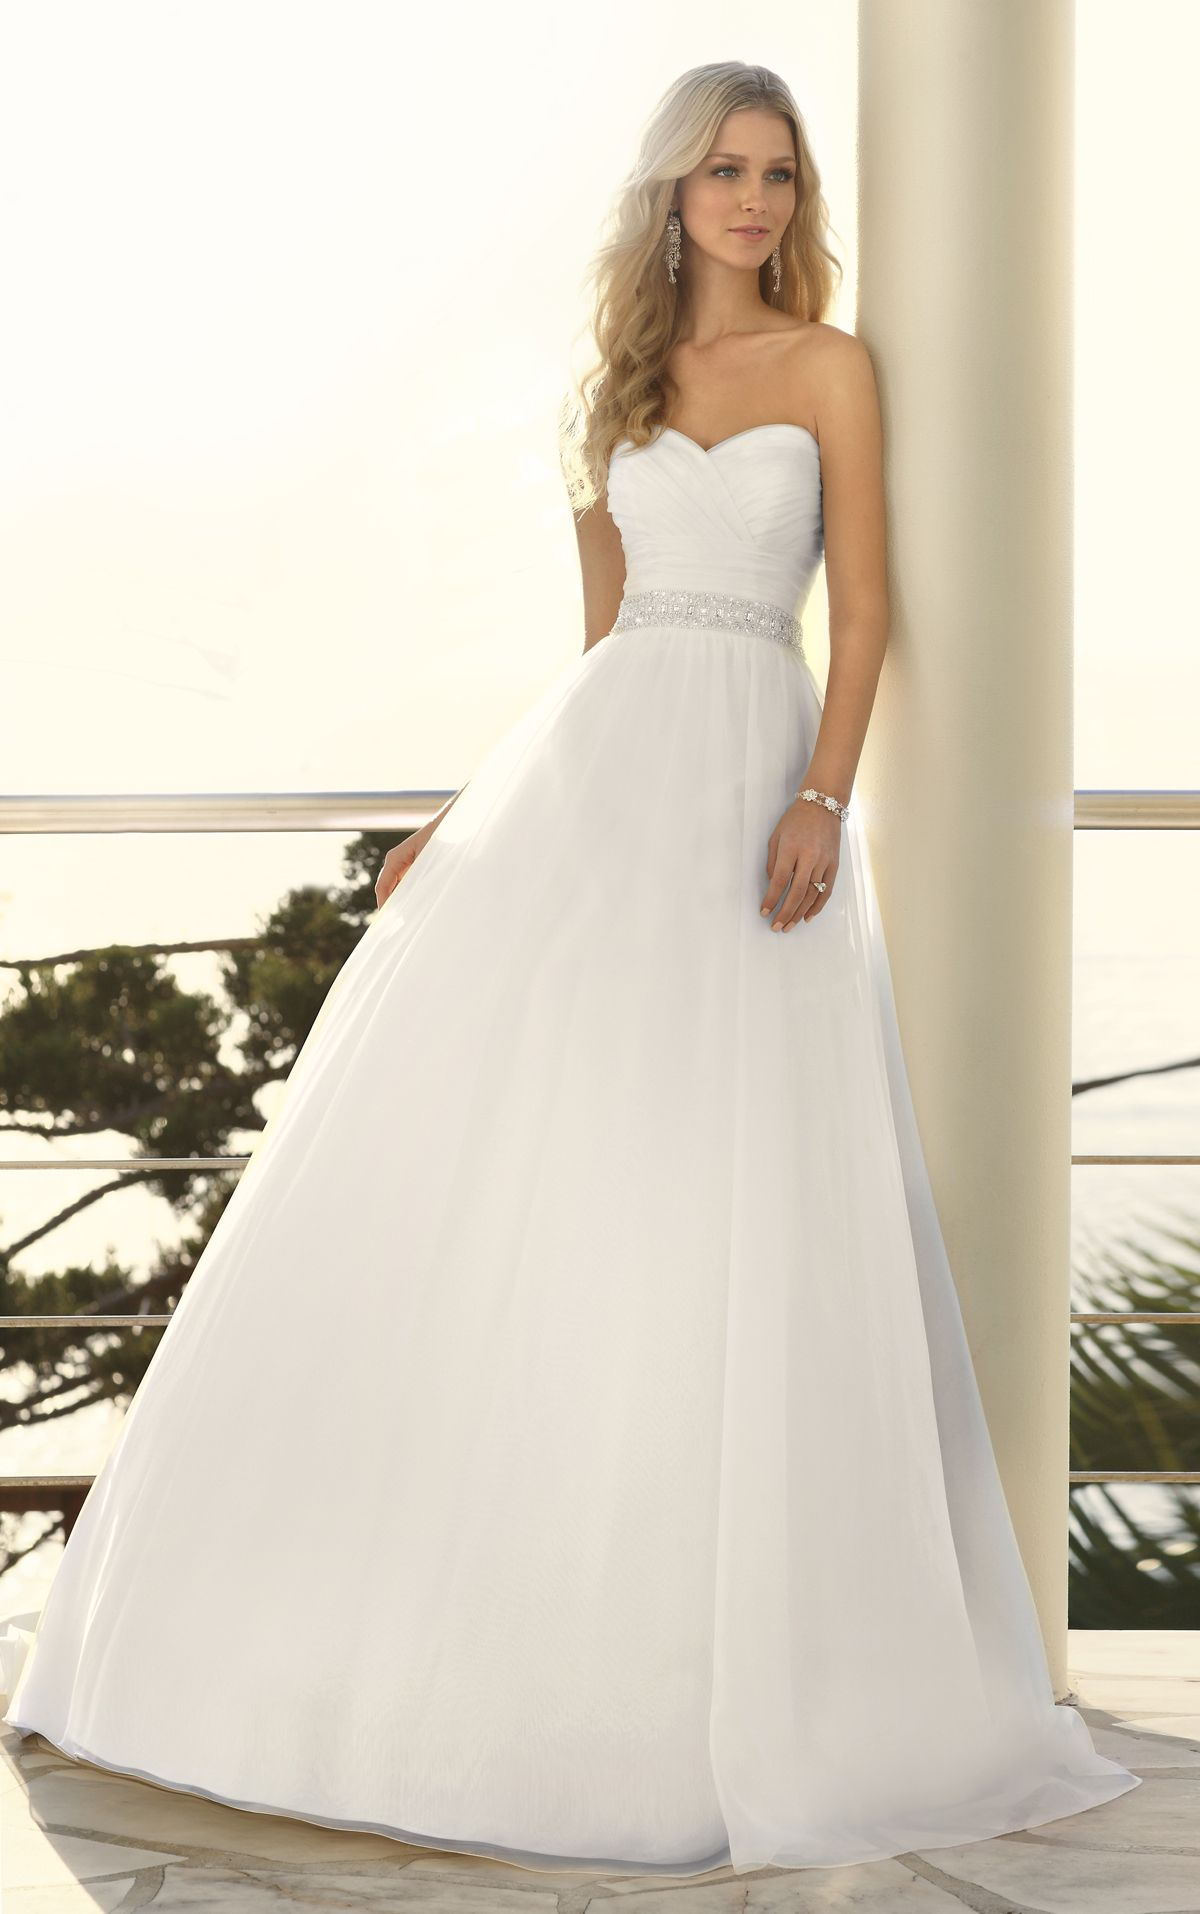 This has to be the most gorgeous yet simple wedding dresses i have